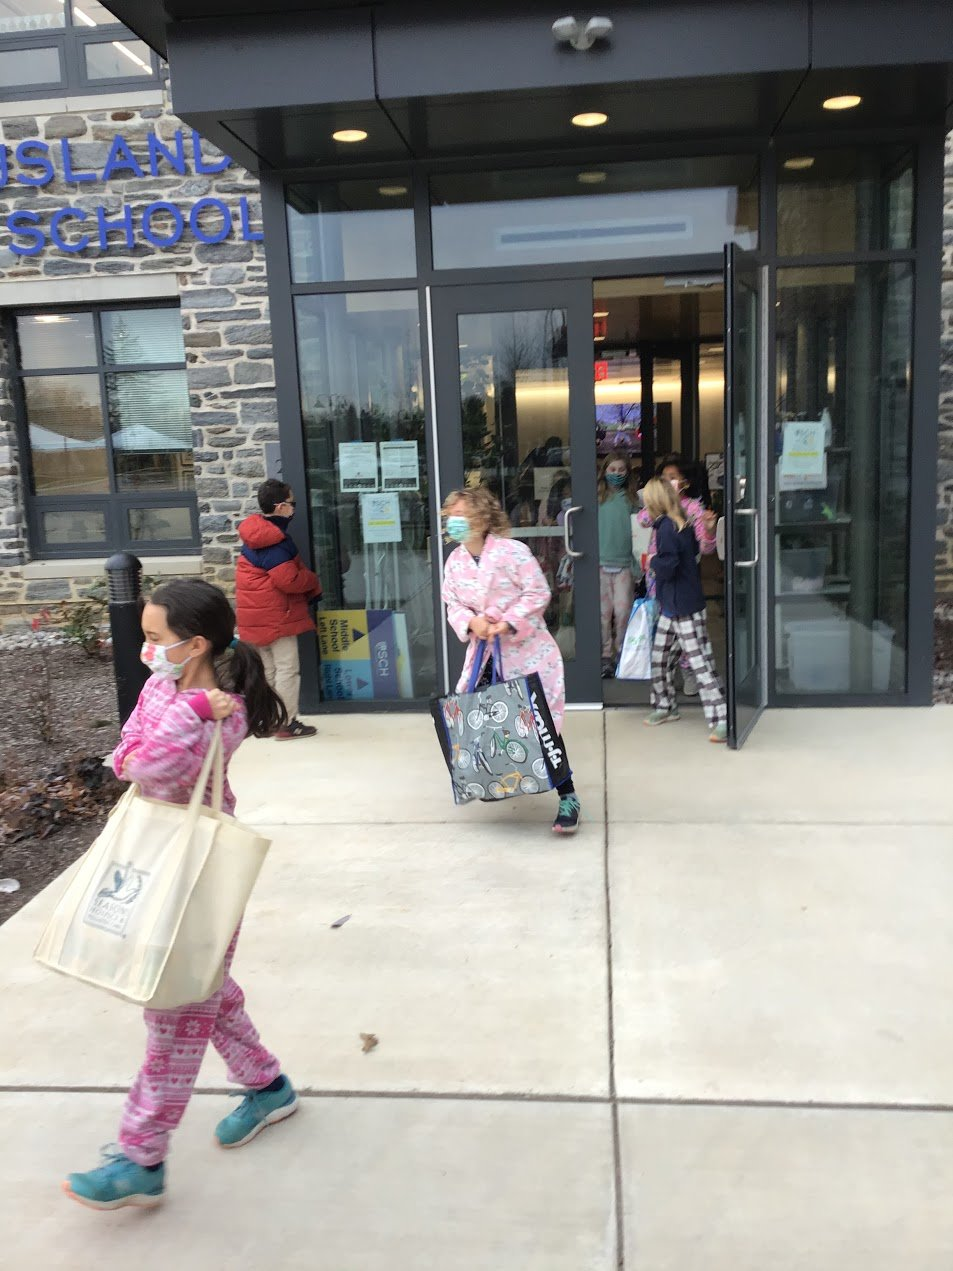 Lower School girls carry bags filled with collected goods for volunteer parents to deliver to the St. Vincent de Paul Food Pantry in Germantown.